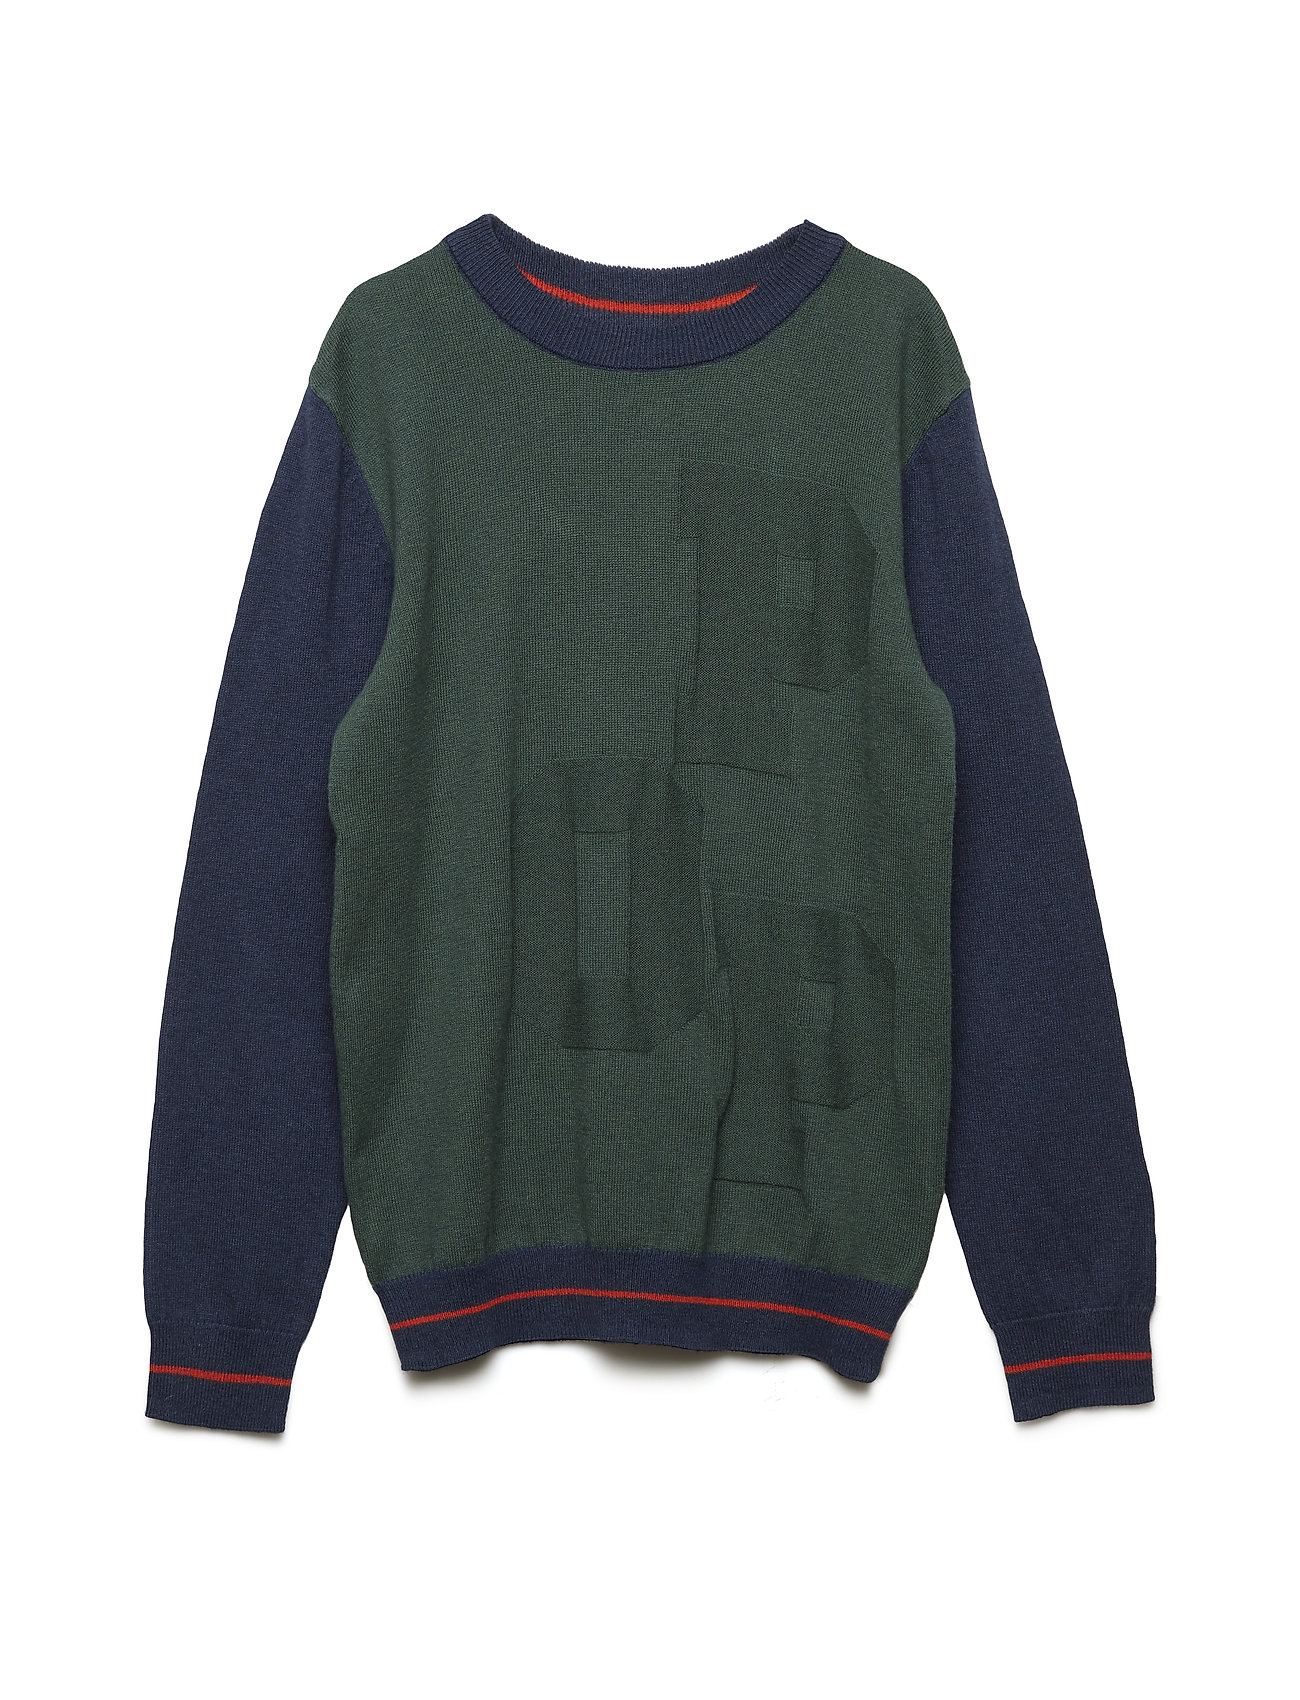 Polarn O. Pyret Sweater Knitted School - GARDEN TOPIARY